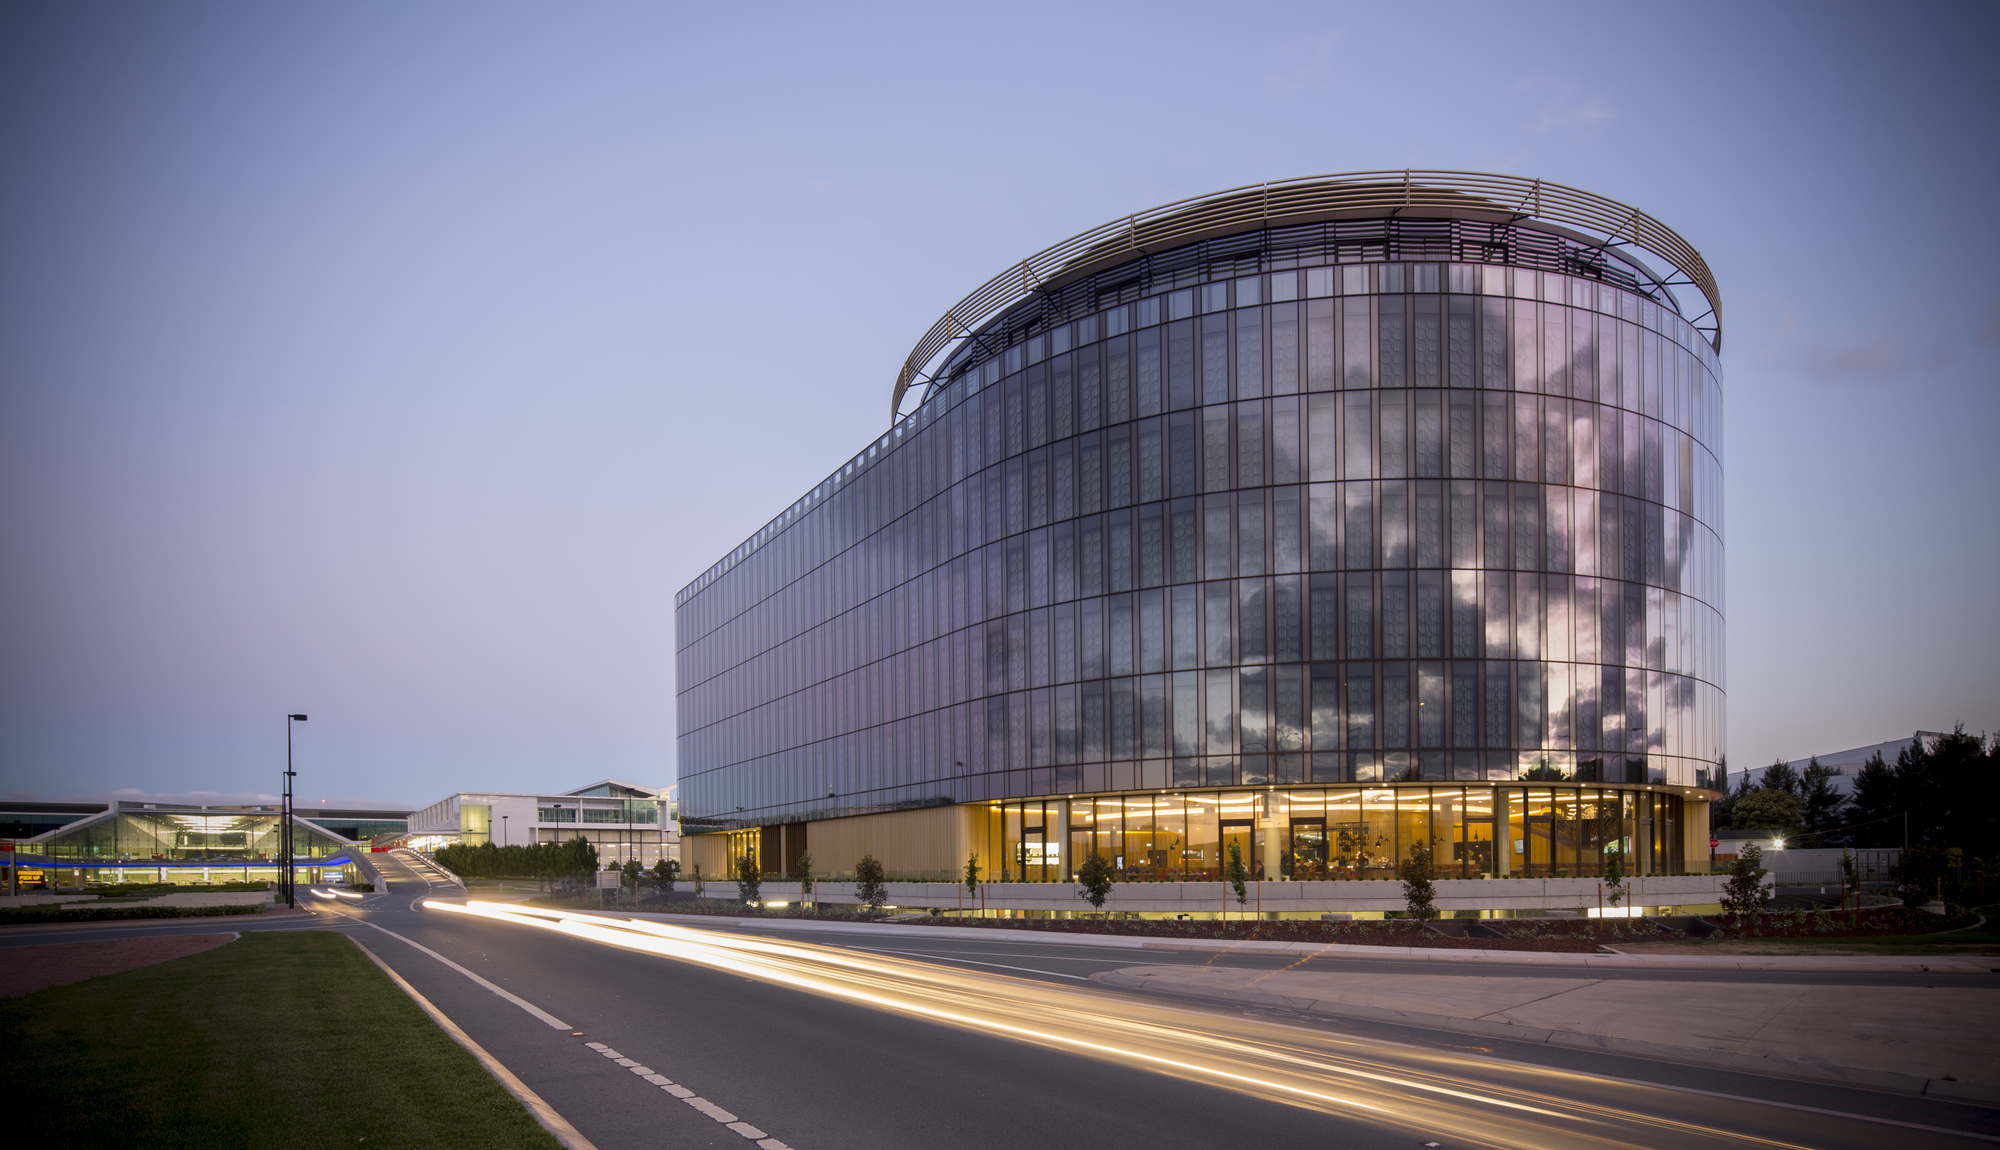 Canberra hotel bates smart archdaily for Hotel design ce